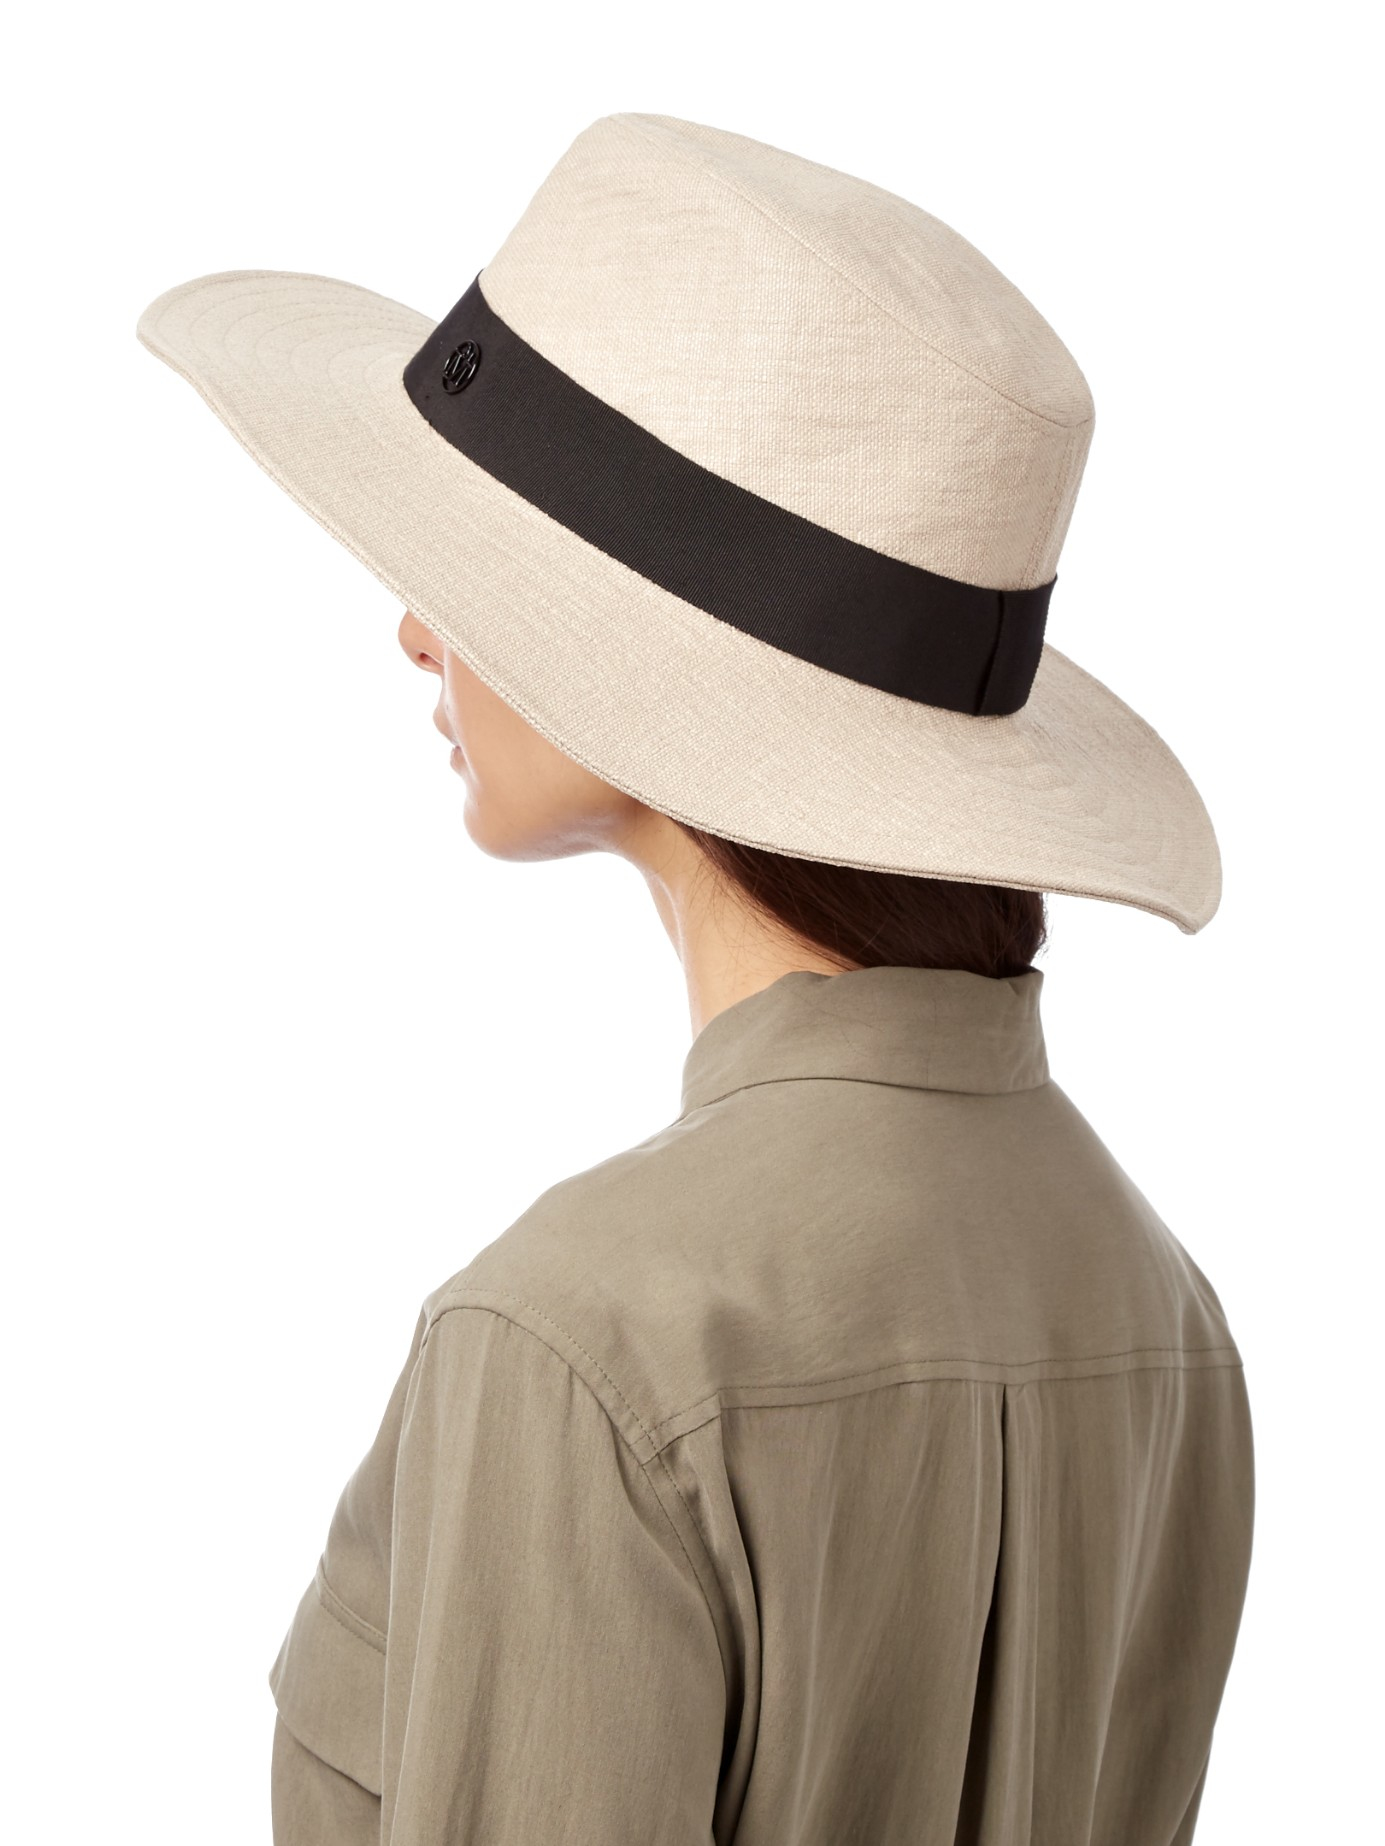 Lyst - Maison Michel Charles Straw Foldable Hat in Natural 52ffdbd6958